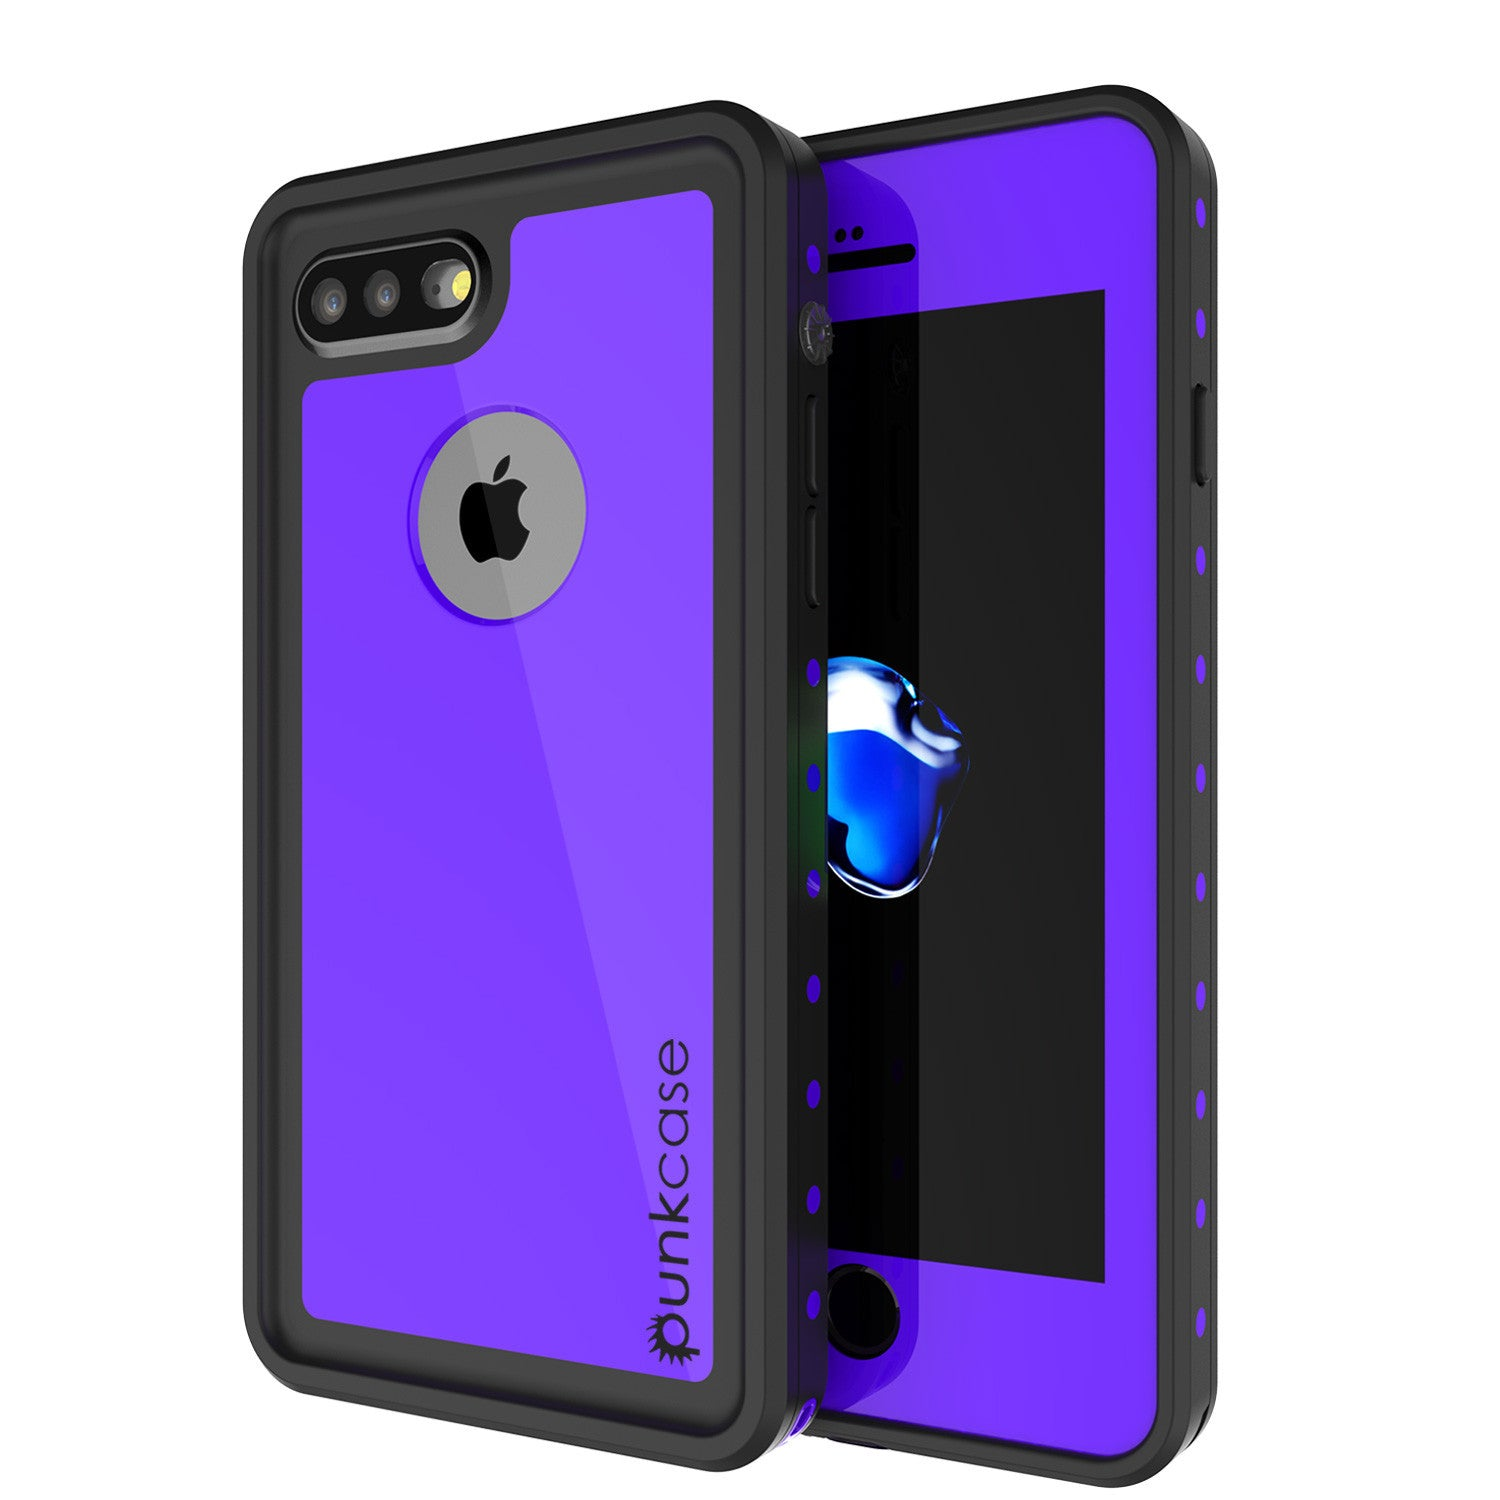 iPhone 8+ Plus Waterproof Case, Punkcase [StudStar Series] [Purple] [Slim Fit] [Shockproof] [Dirtproof] [Snowproof] Armor Cover